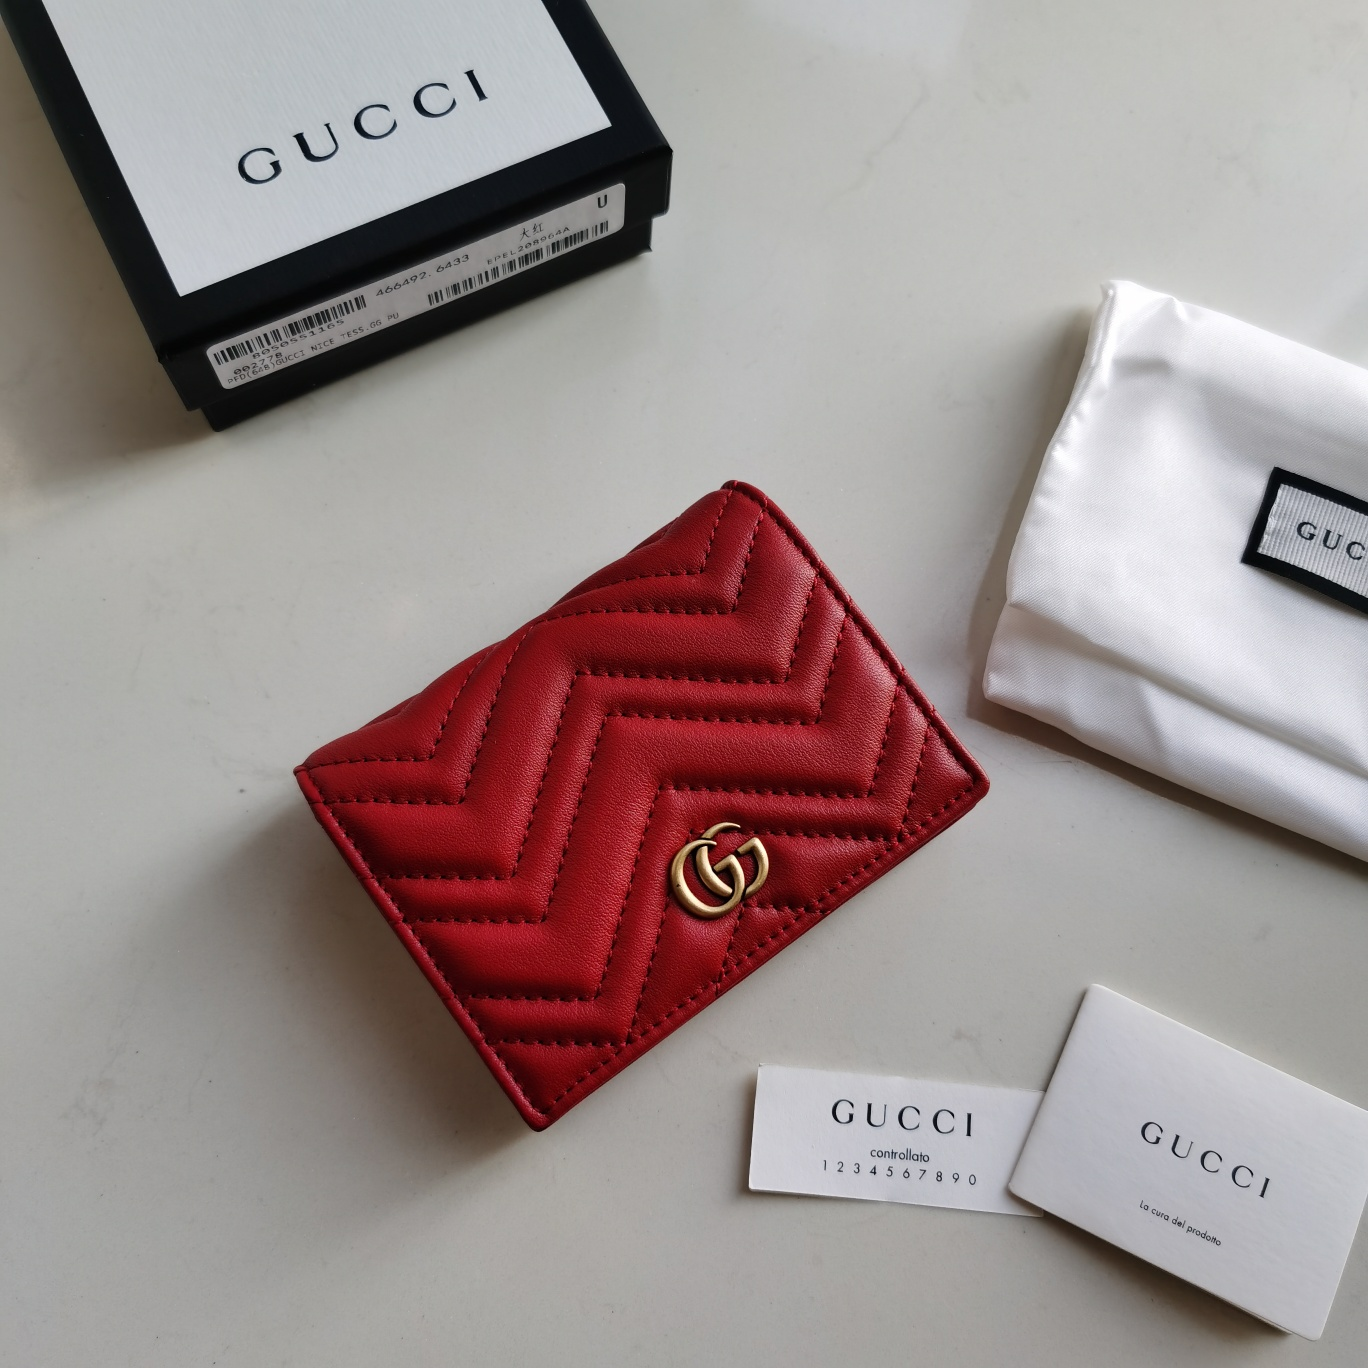 Copy Gucci 466492 Women GG Marmont Card Case Wallet Red Matelasse Chevron Leather